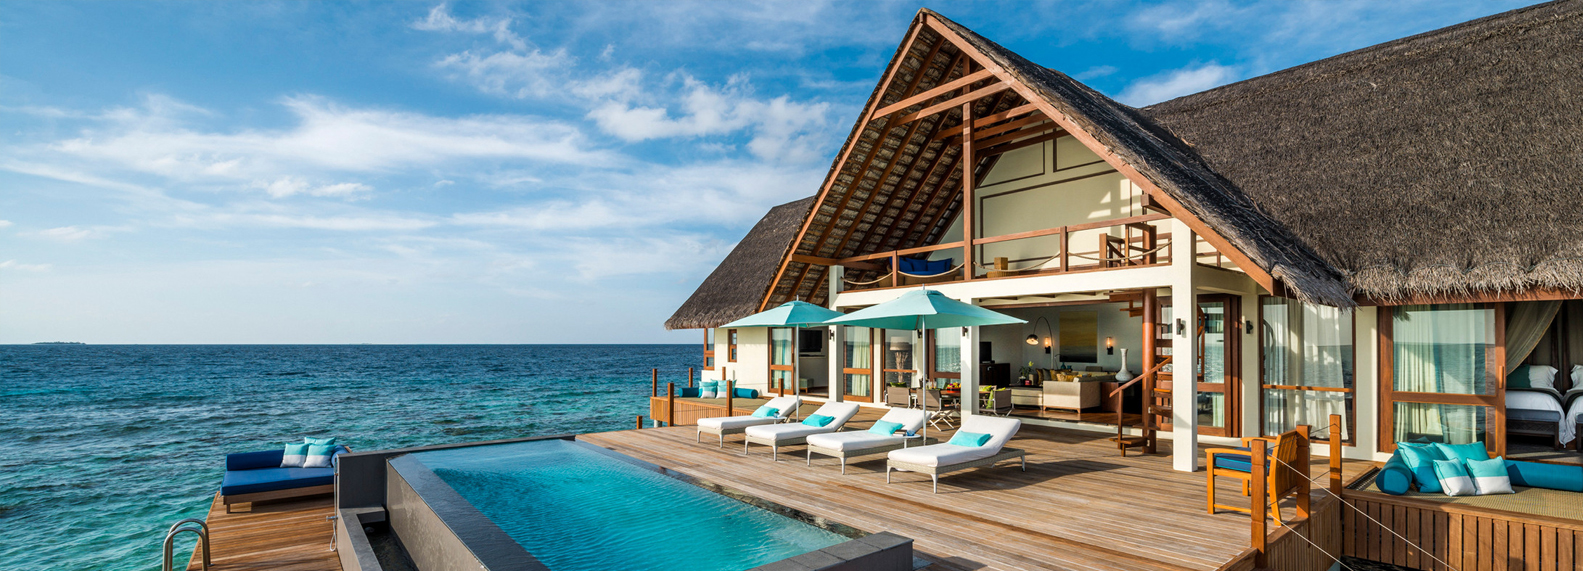 Four Seasons Maldives at Landaa Giraavaru